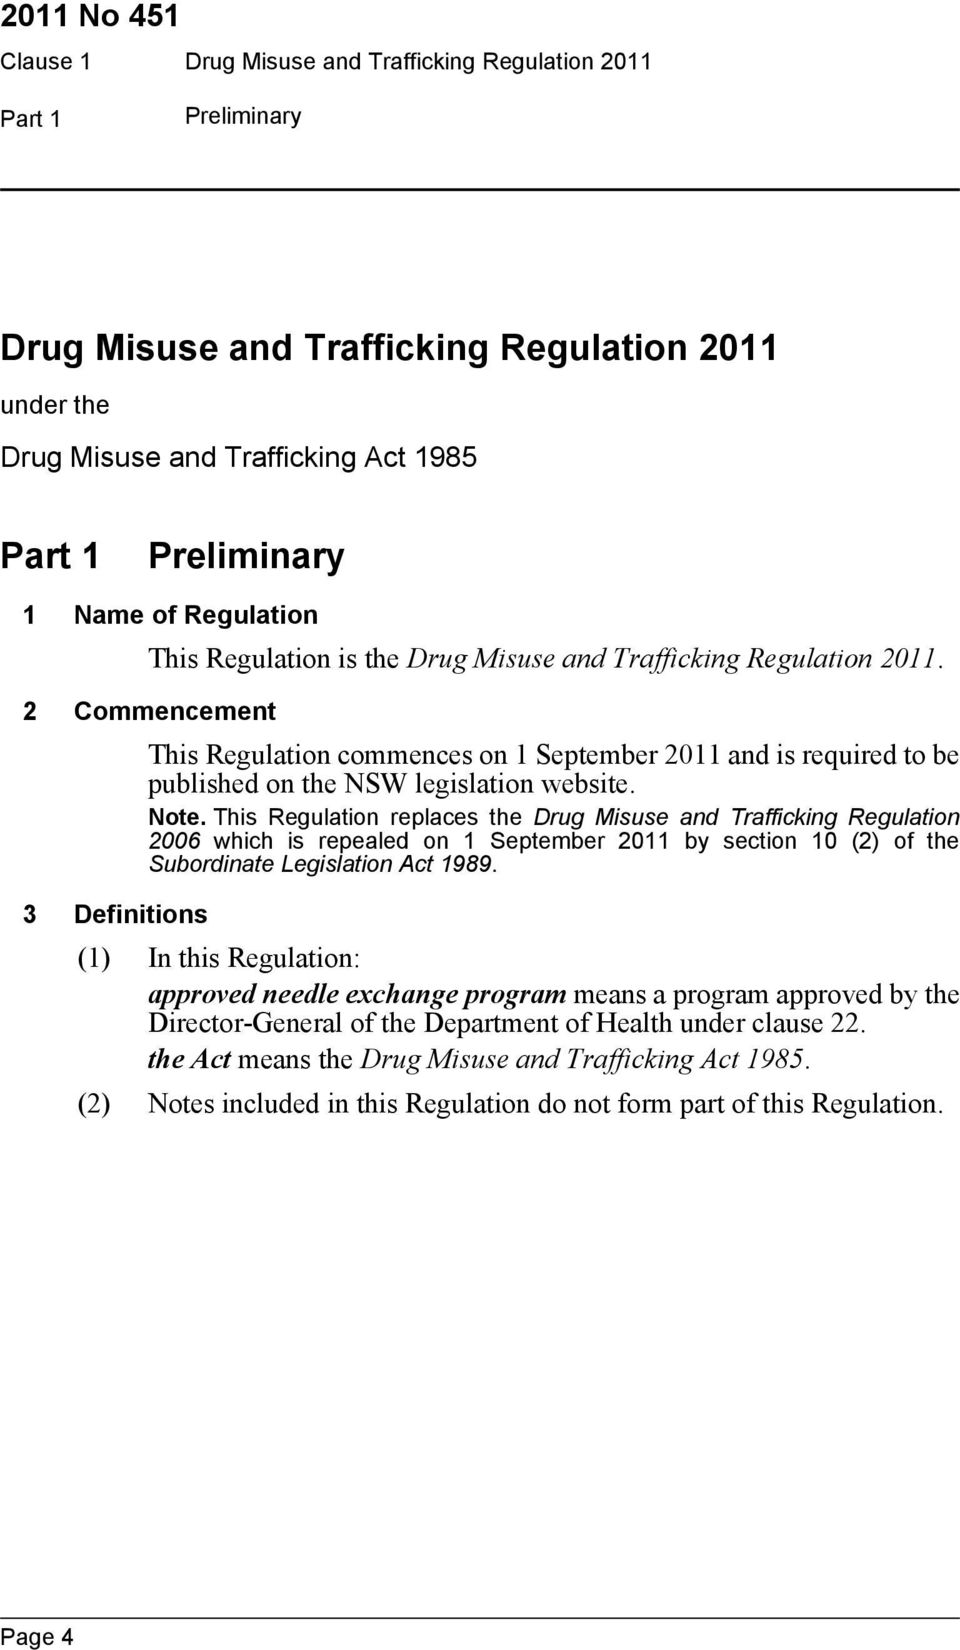 This Regulation replaces the Drug Misuse and Trafficking Regulation 2006 which is repealed on 1 September 2011 by section 10 (2) of the Subordinate Legislation Act 1989.